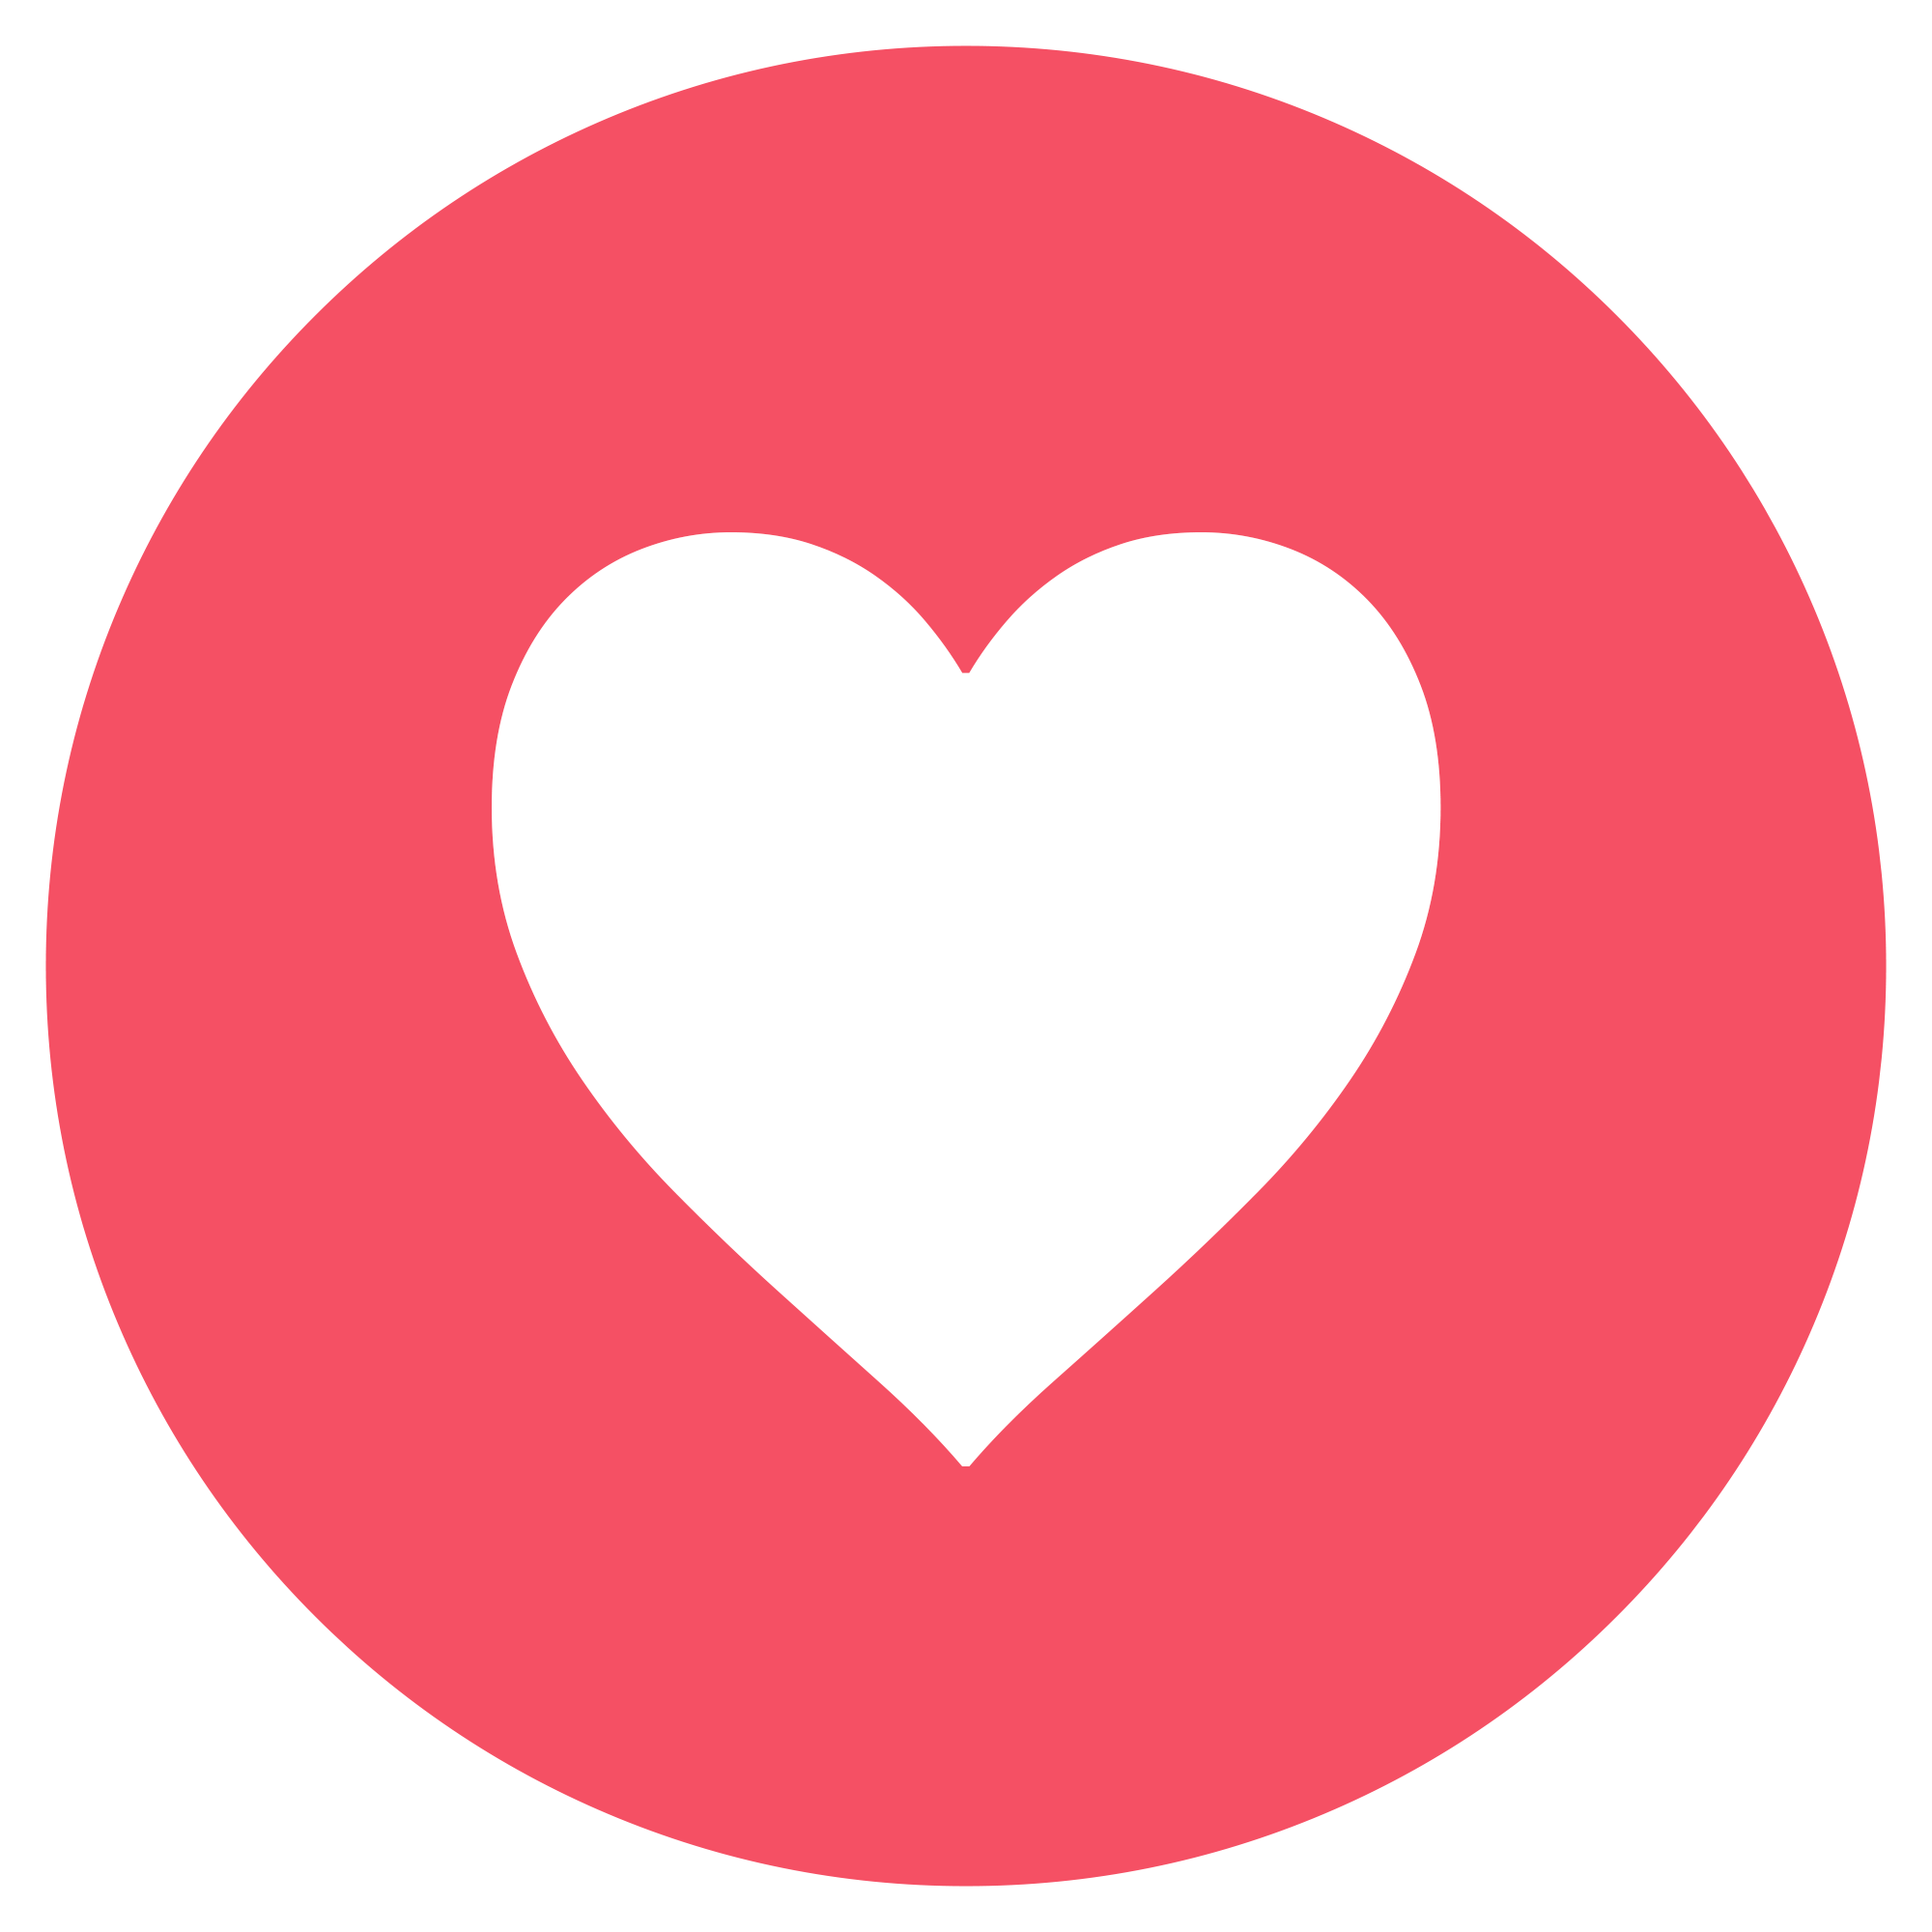 Heart Icon PNG Image